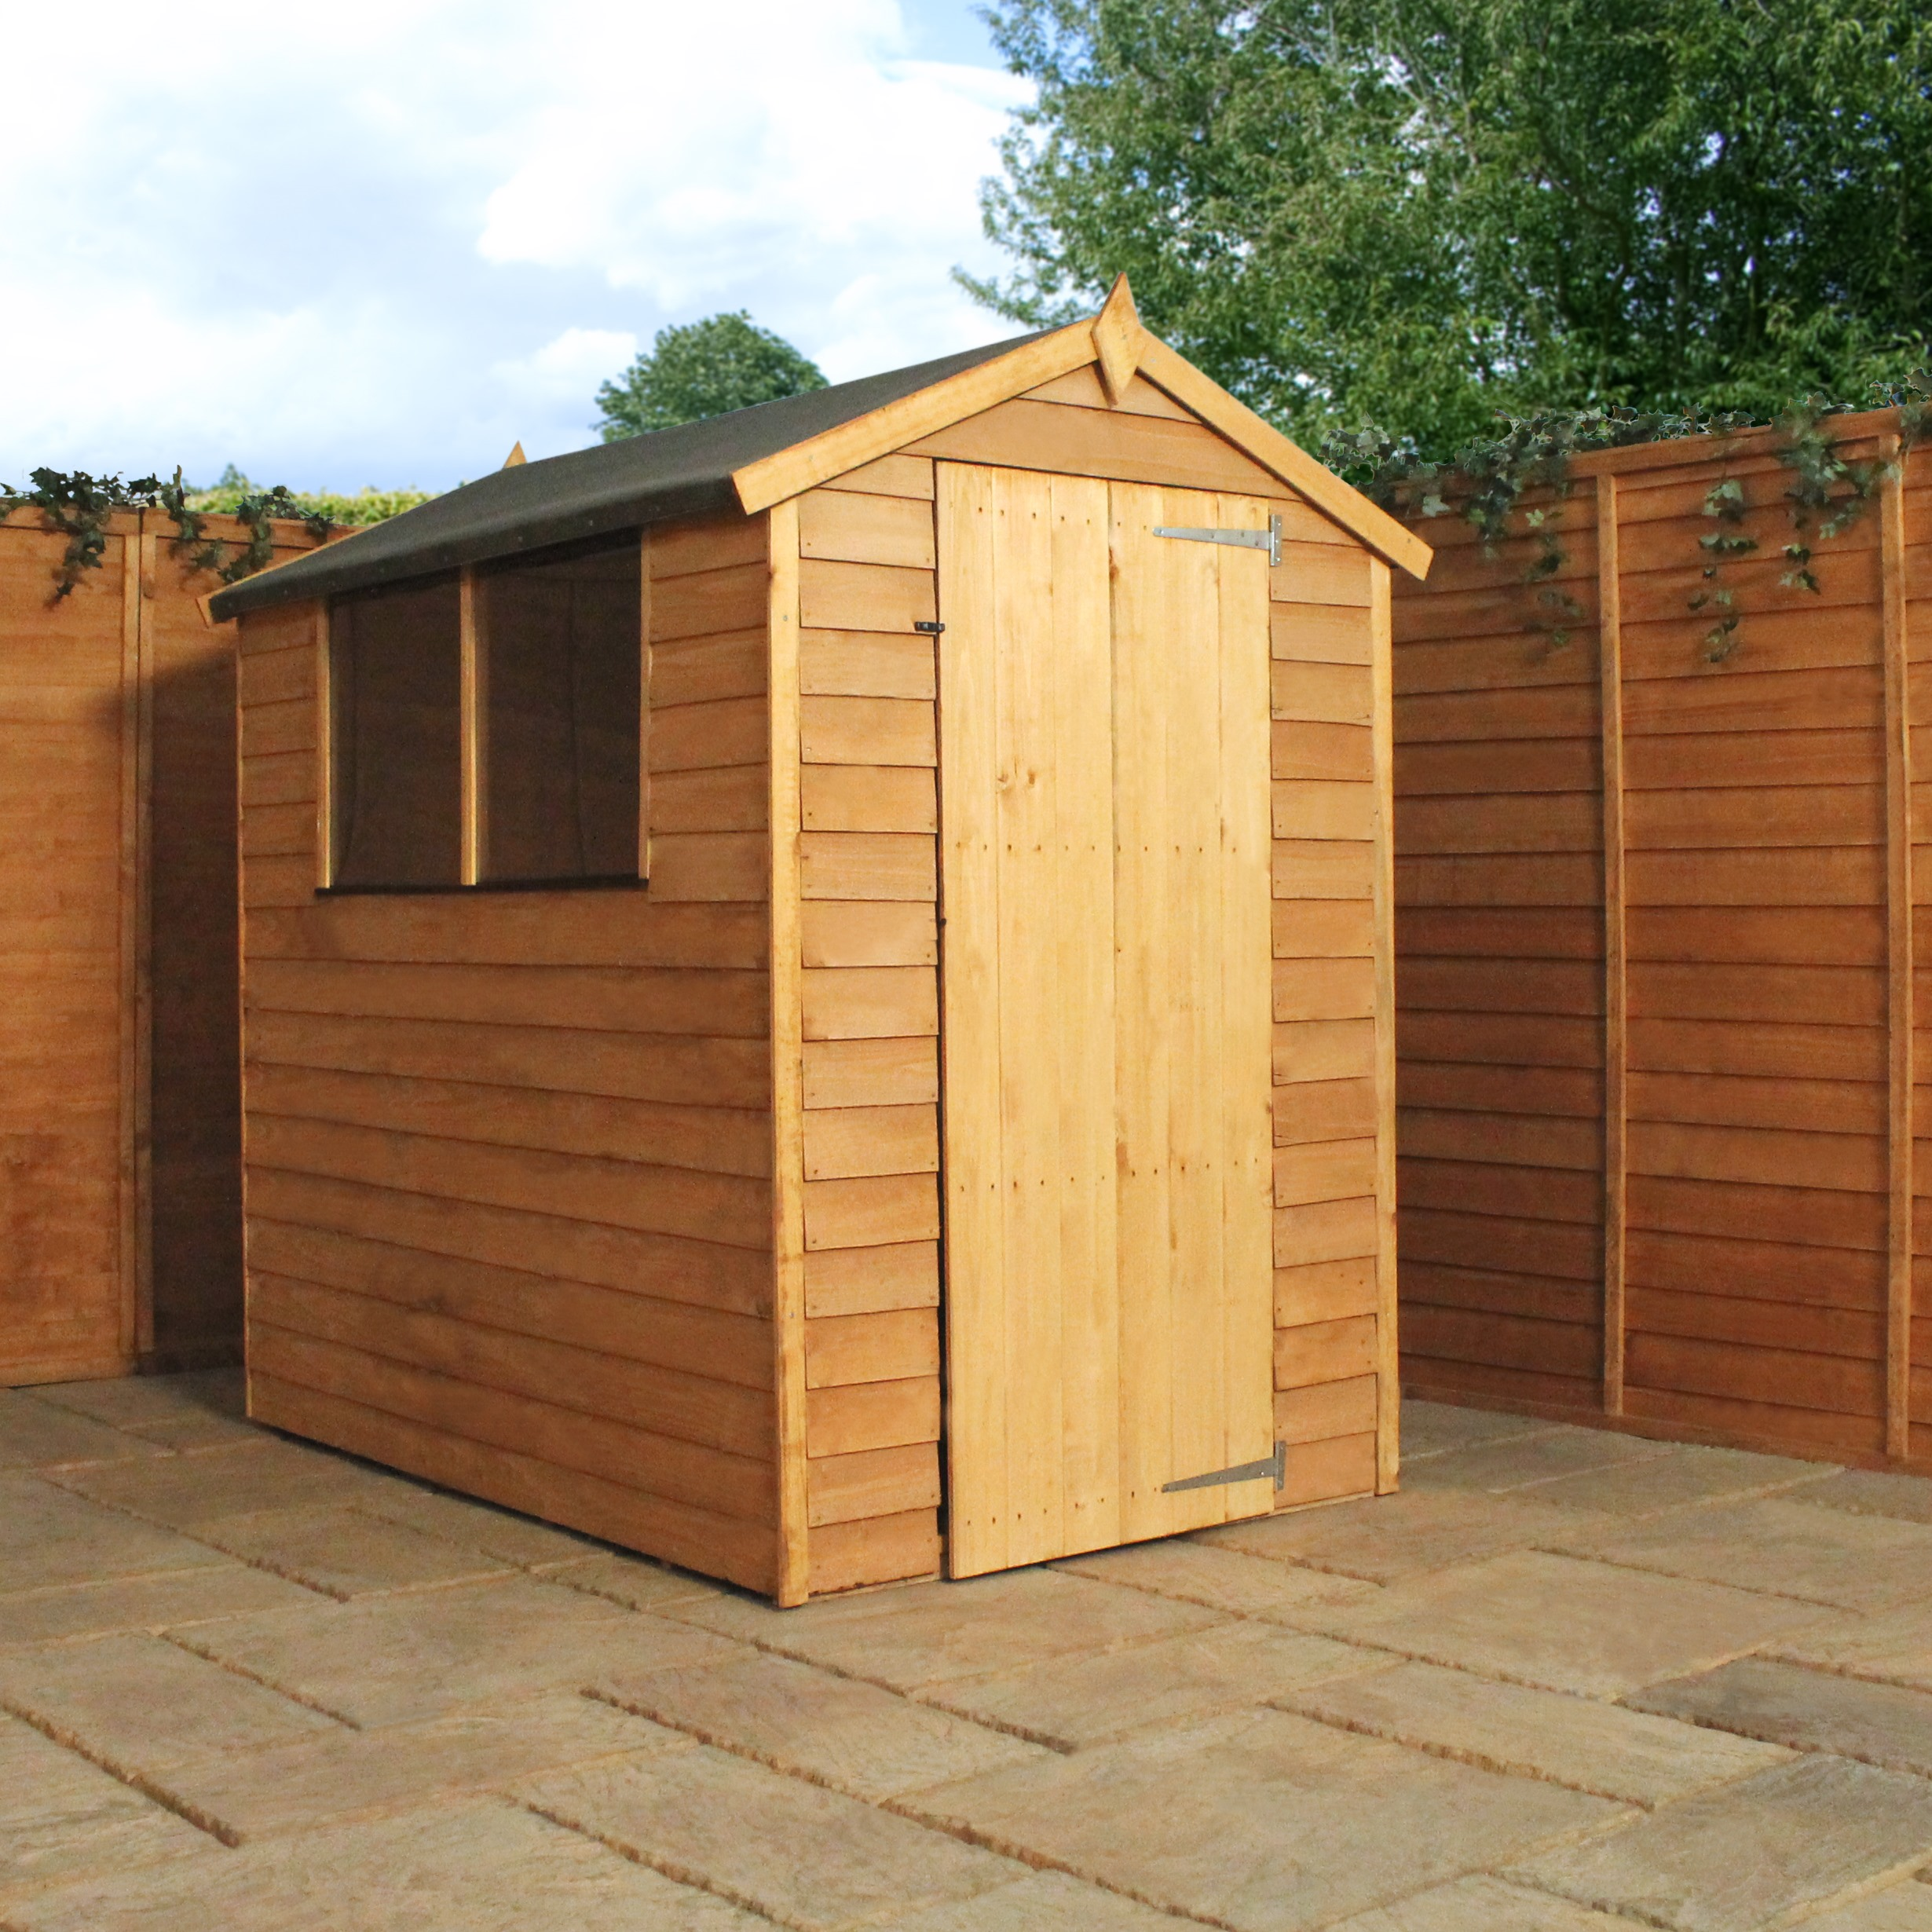 shedswarehousecom oxford 6ft x 4ft super saver overlap apex shed with single door 2 windows 10mm solid osb floor